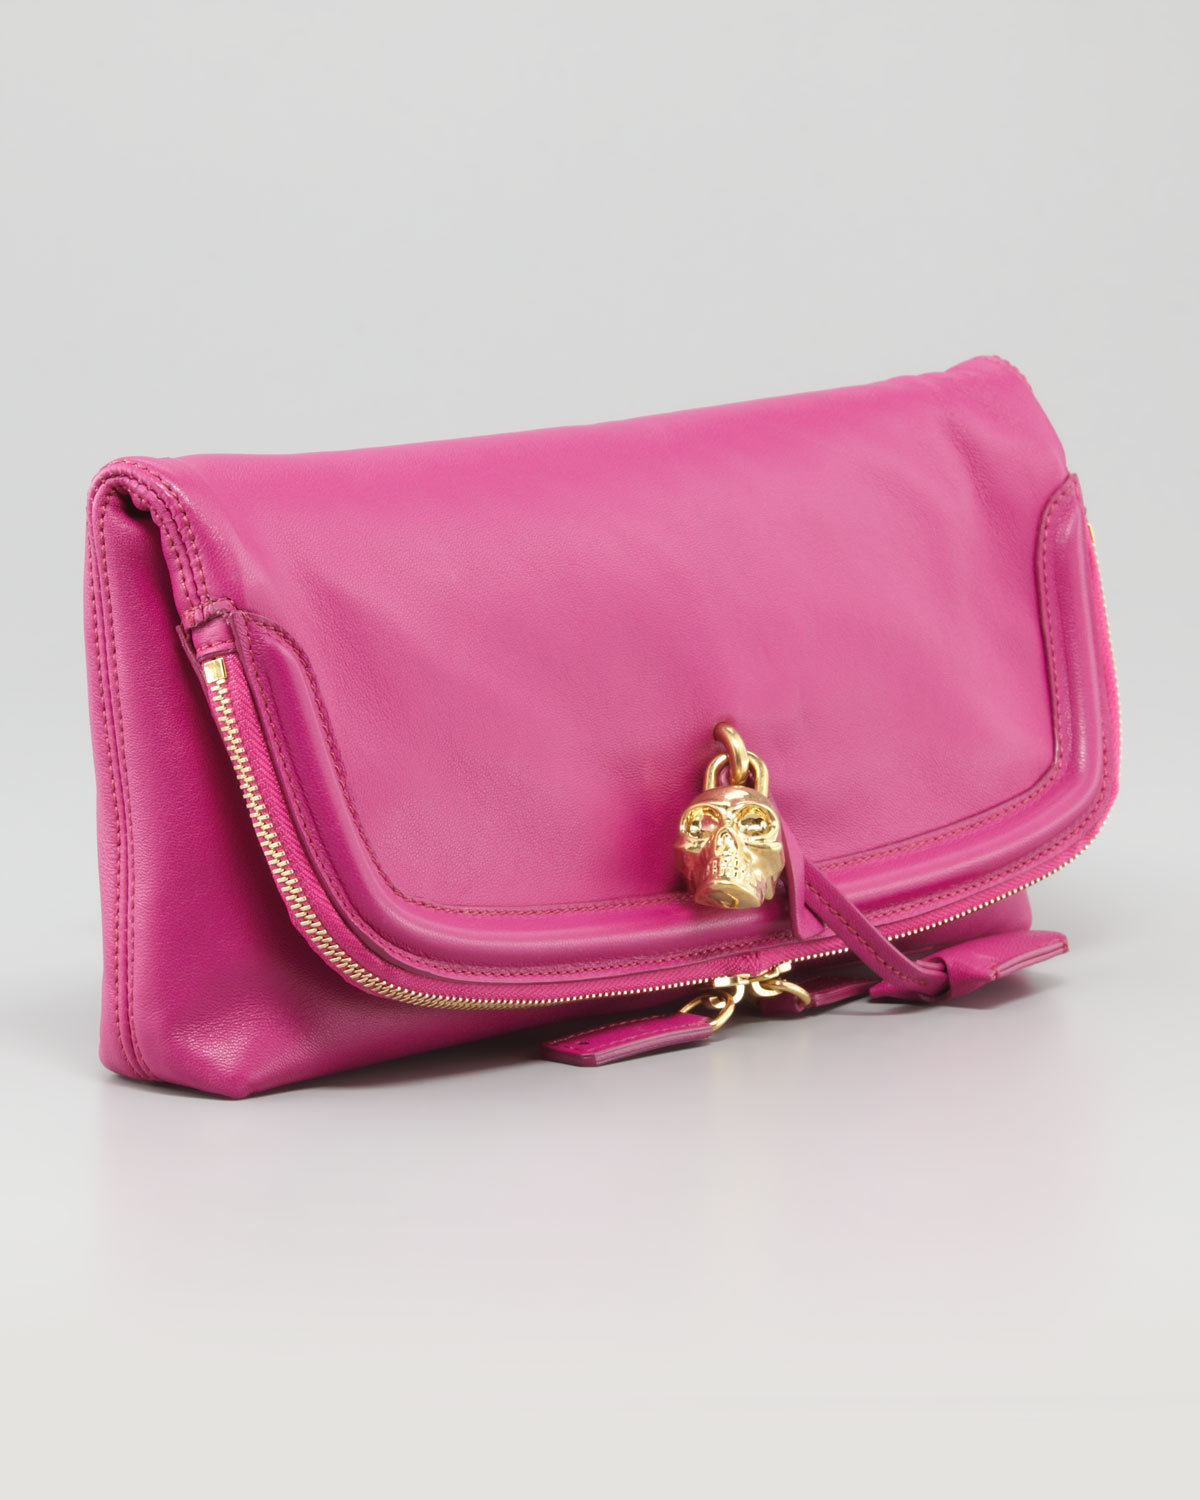 Cheap Sale Online Skull clutch - Pink & Purple Alexander McQueen Reliable For Sale Limited New kO7Pl3w3